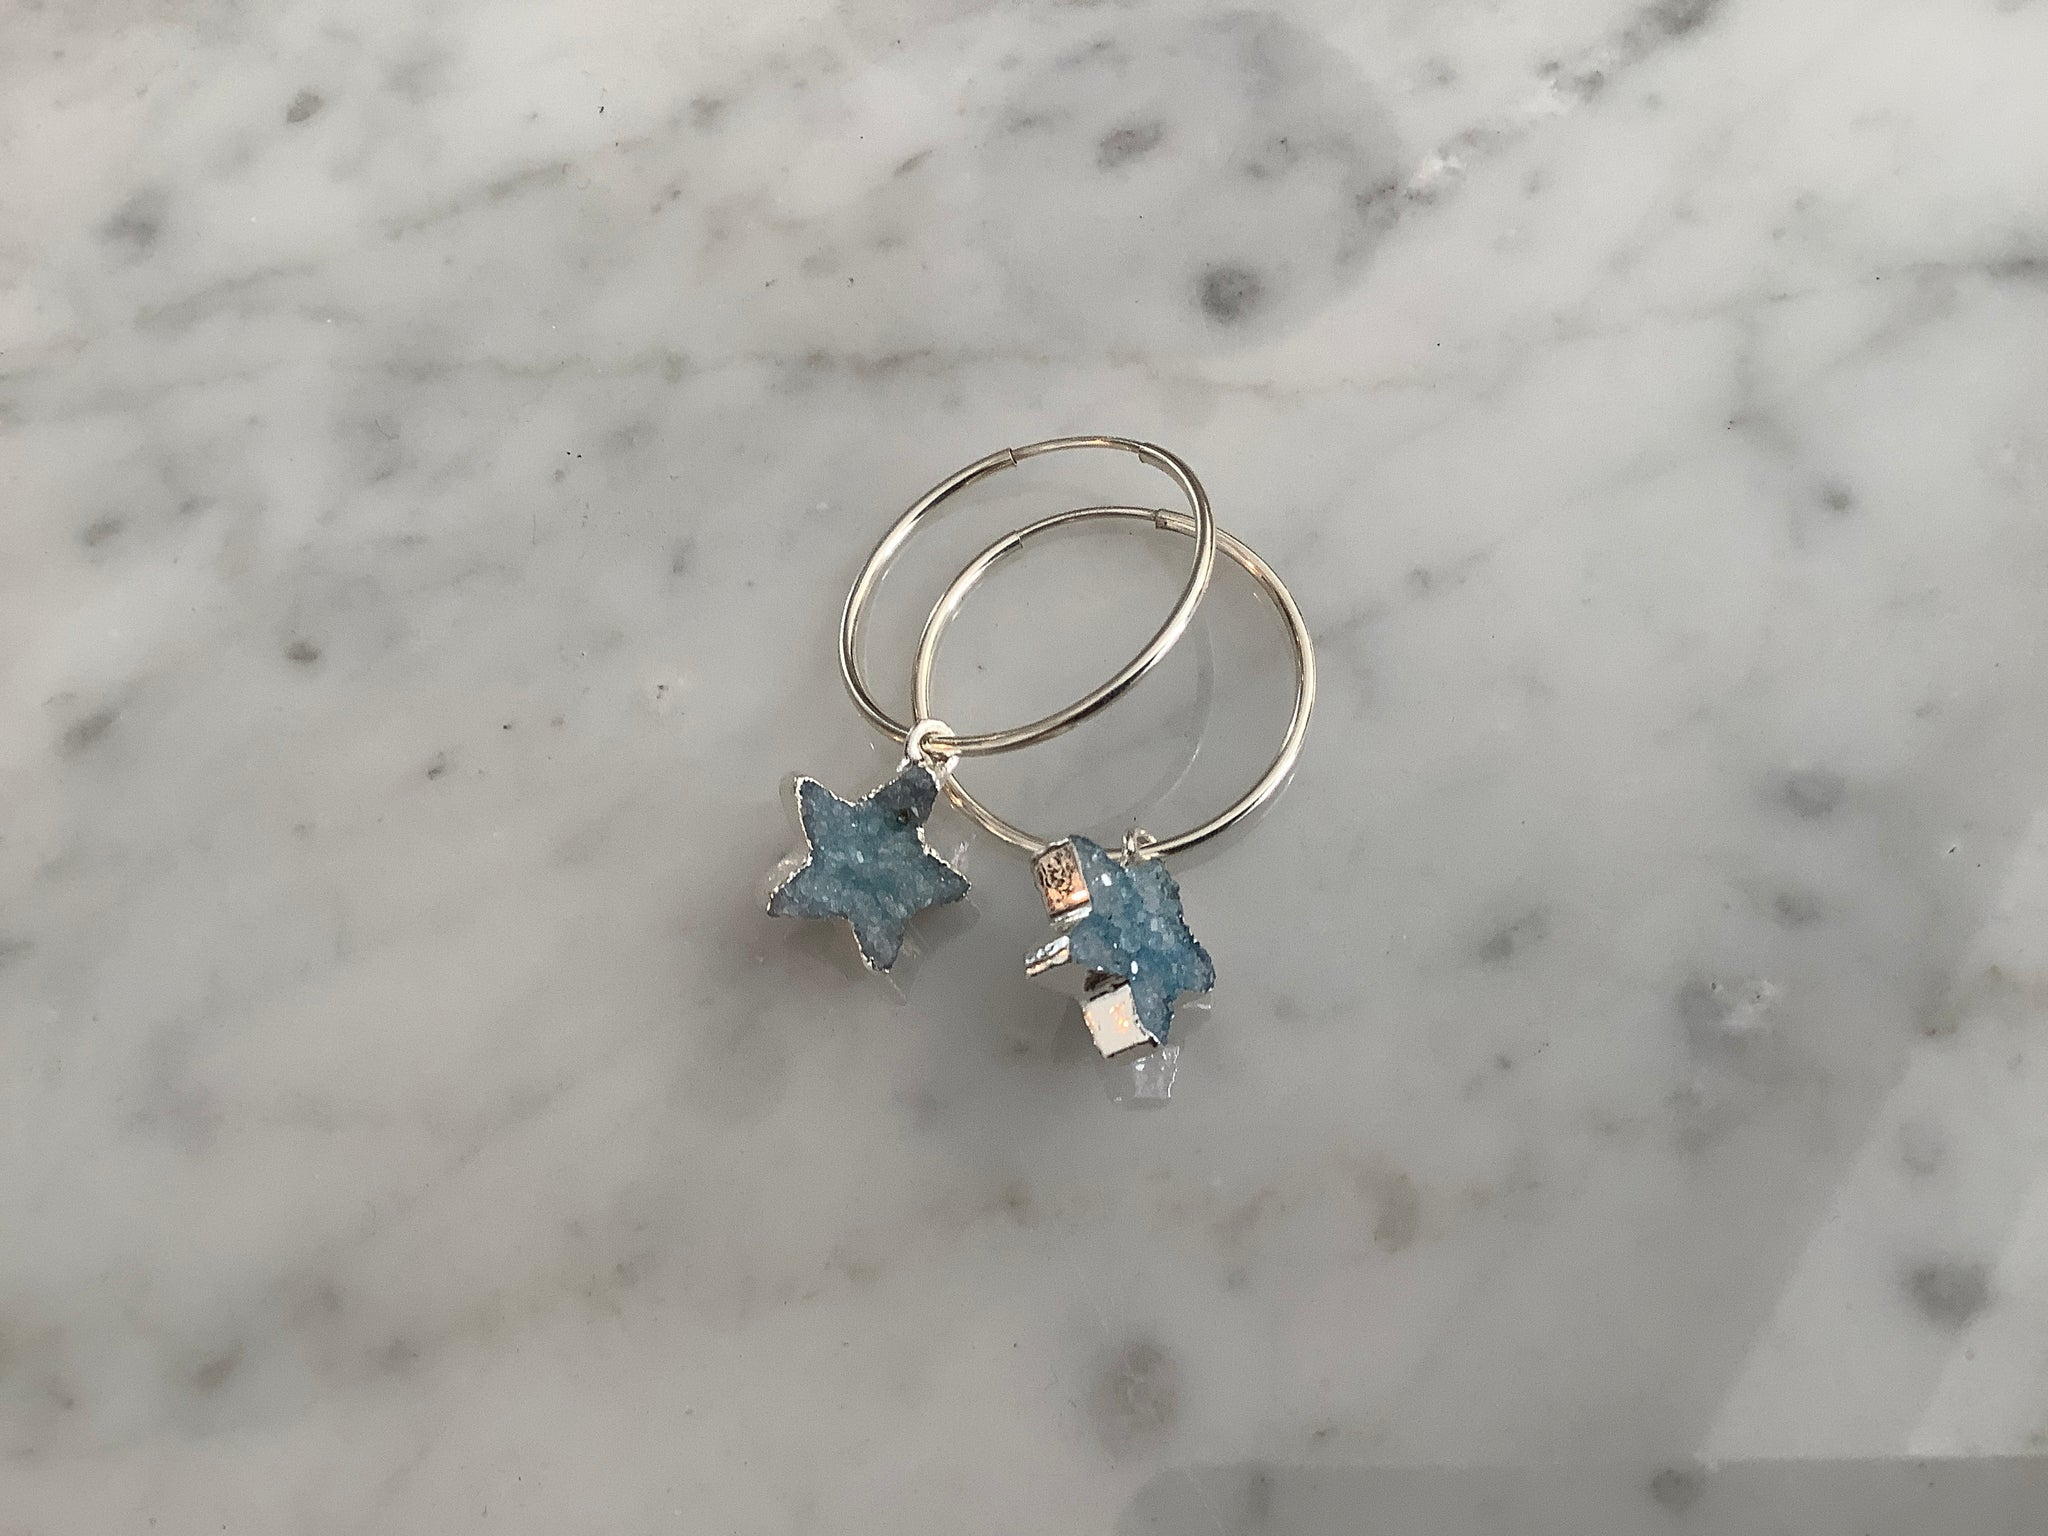 Sterling silver hoop earrings with pale blue drusy quartz stars